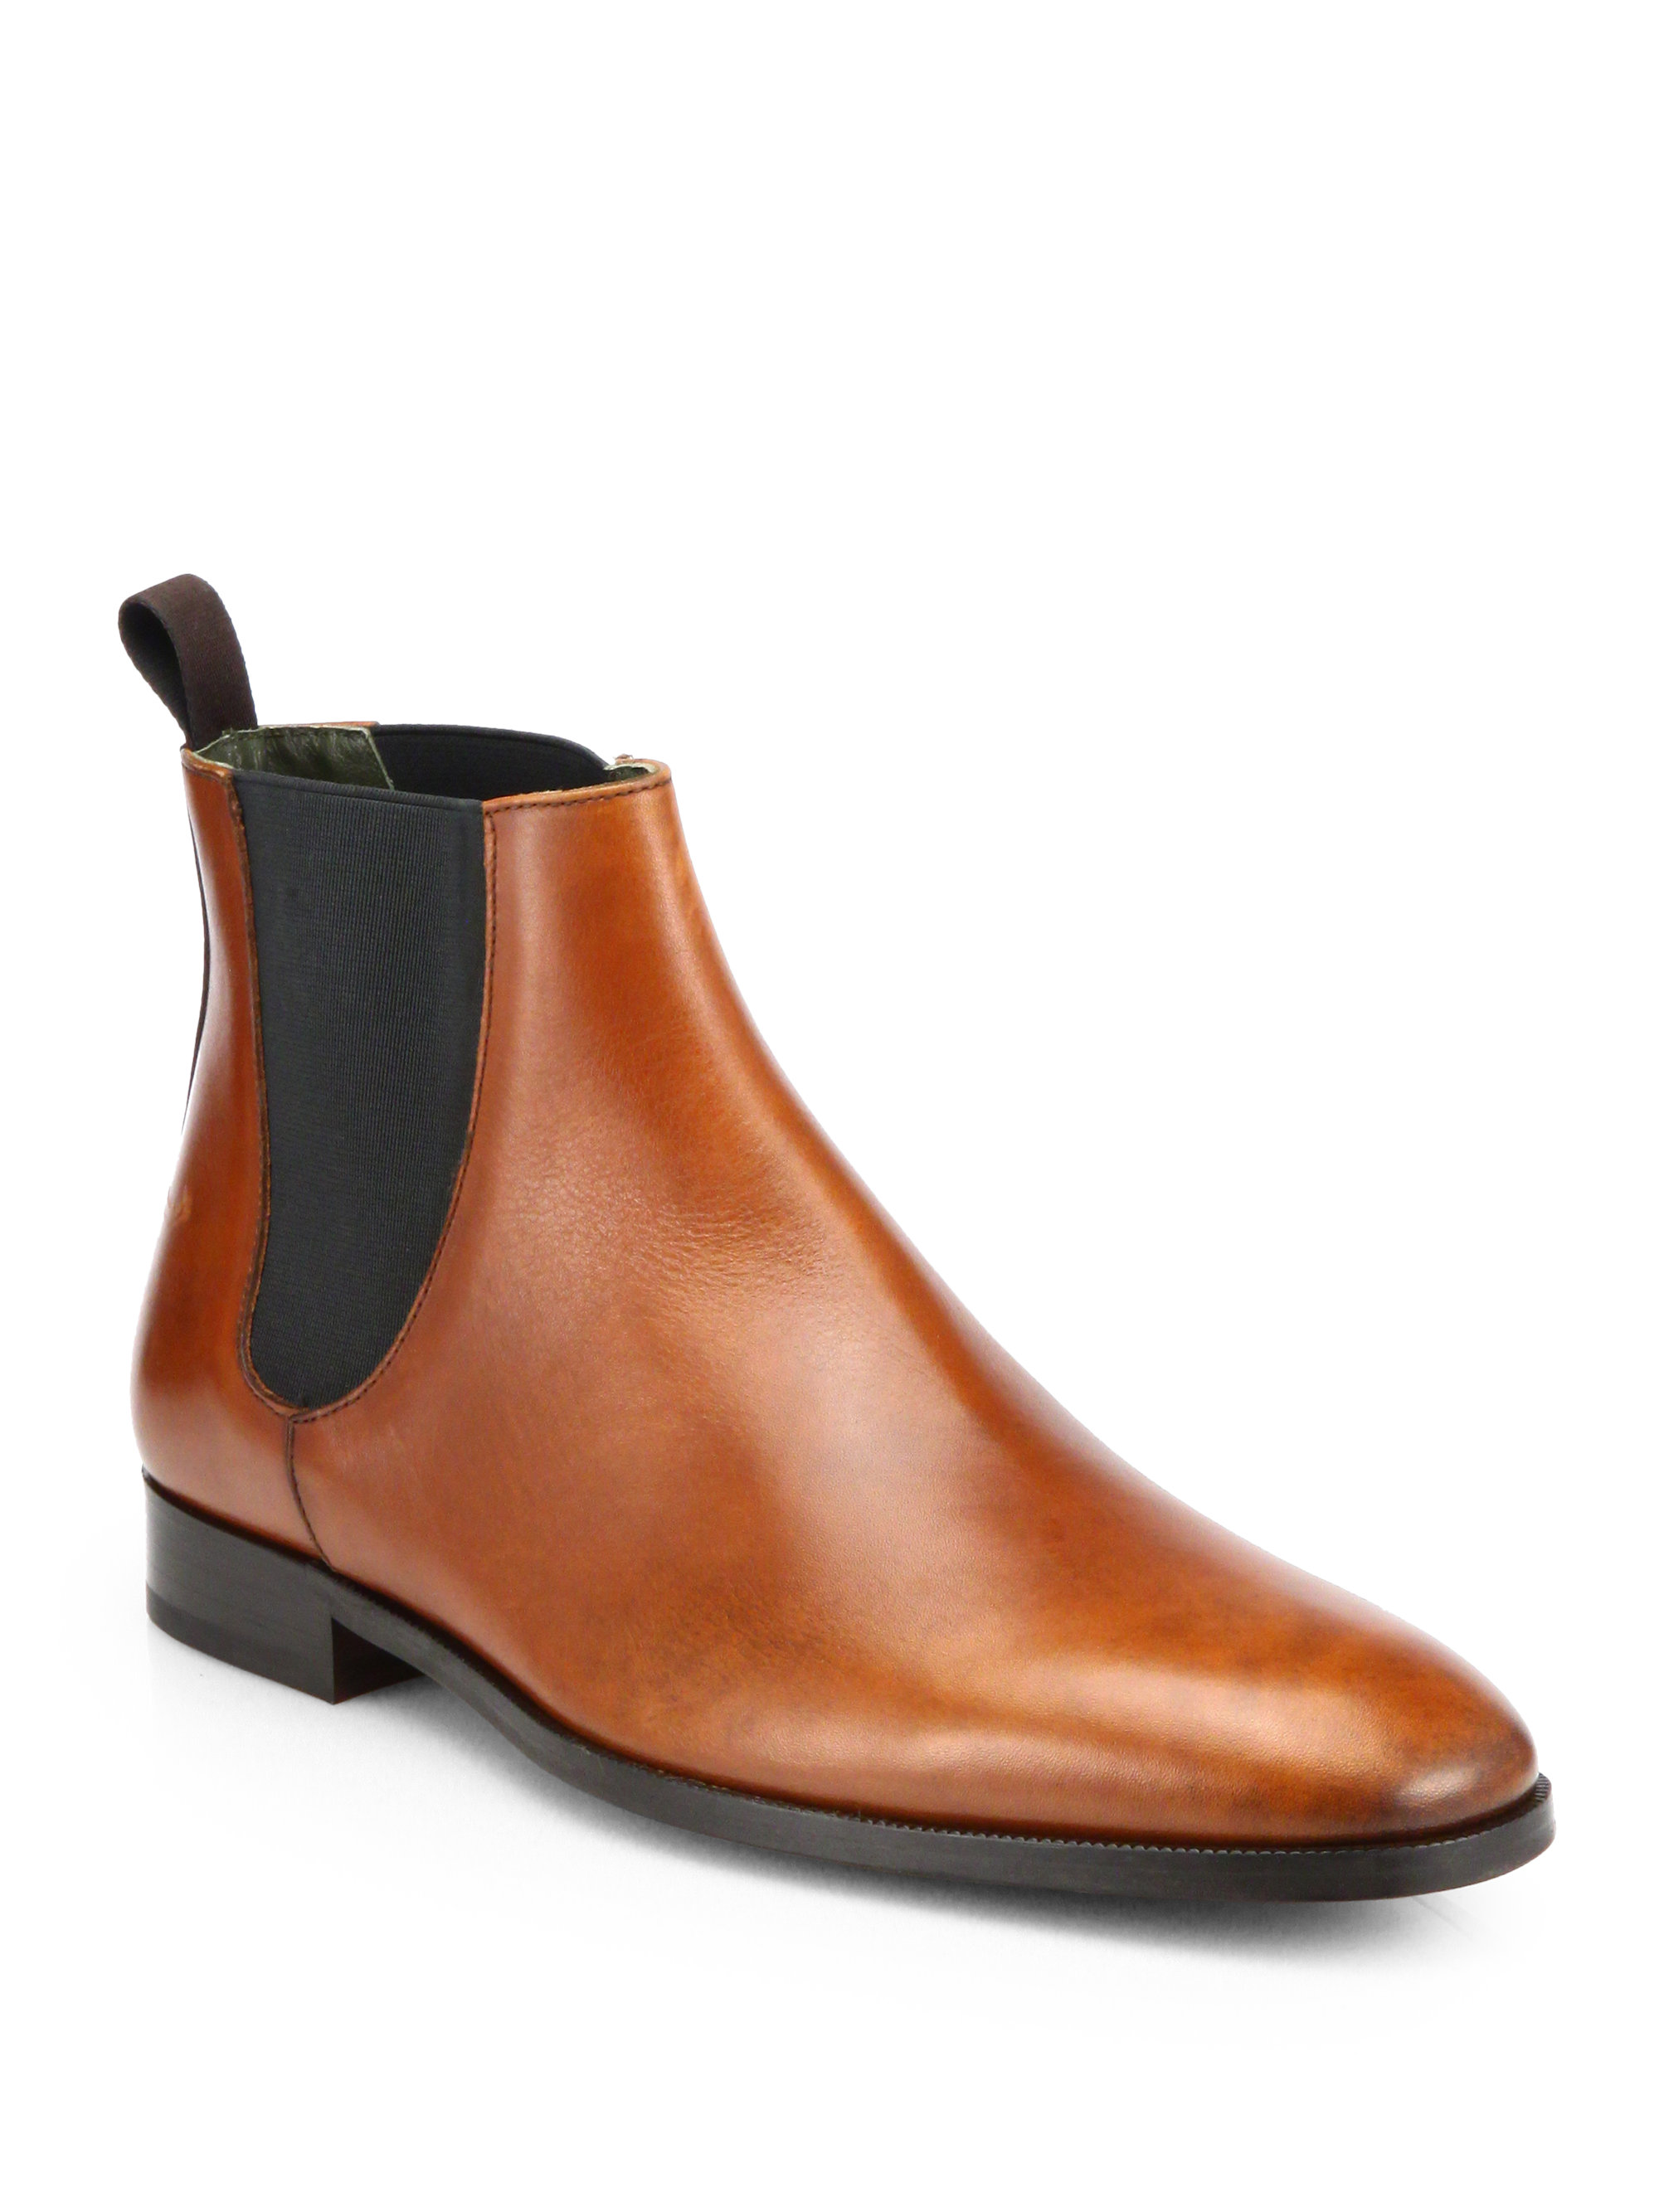 to boot brent leather chelsea boots in brown for men lyst. Black Bedroom Furniture Sets. Home Design Ideas